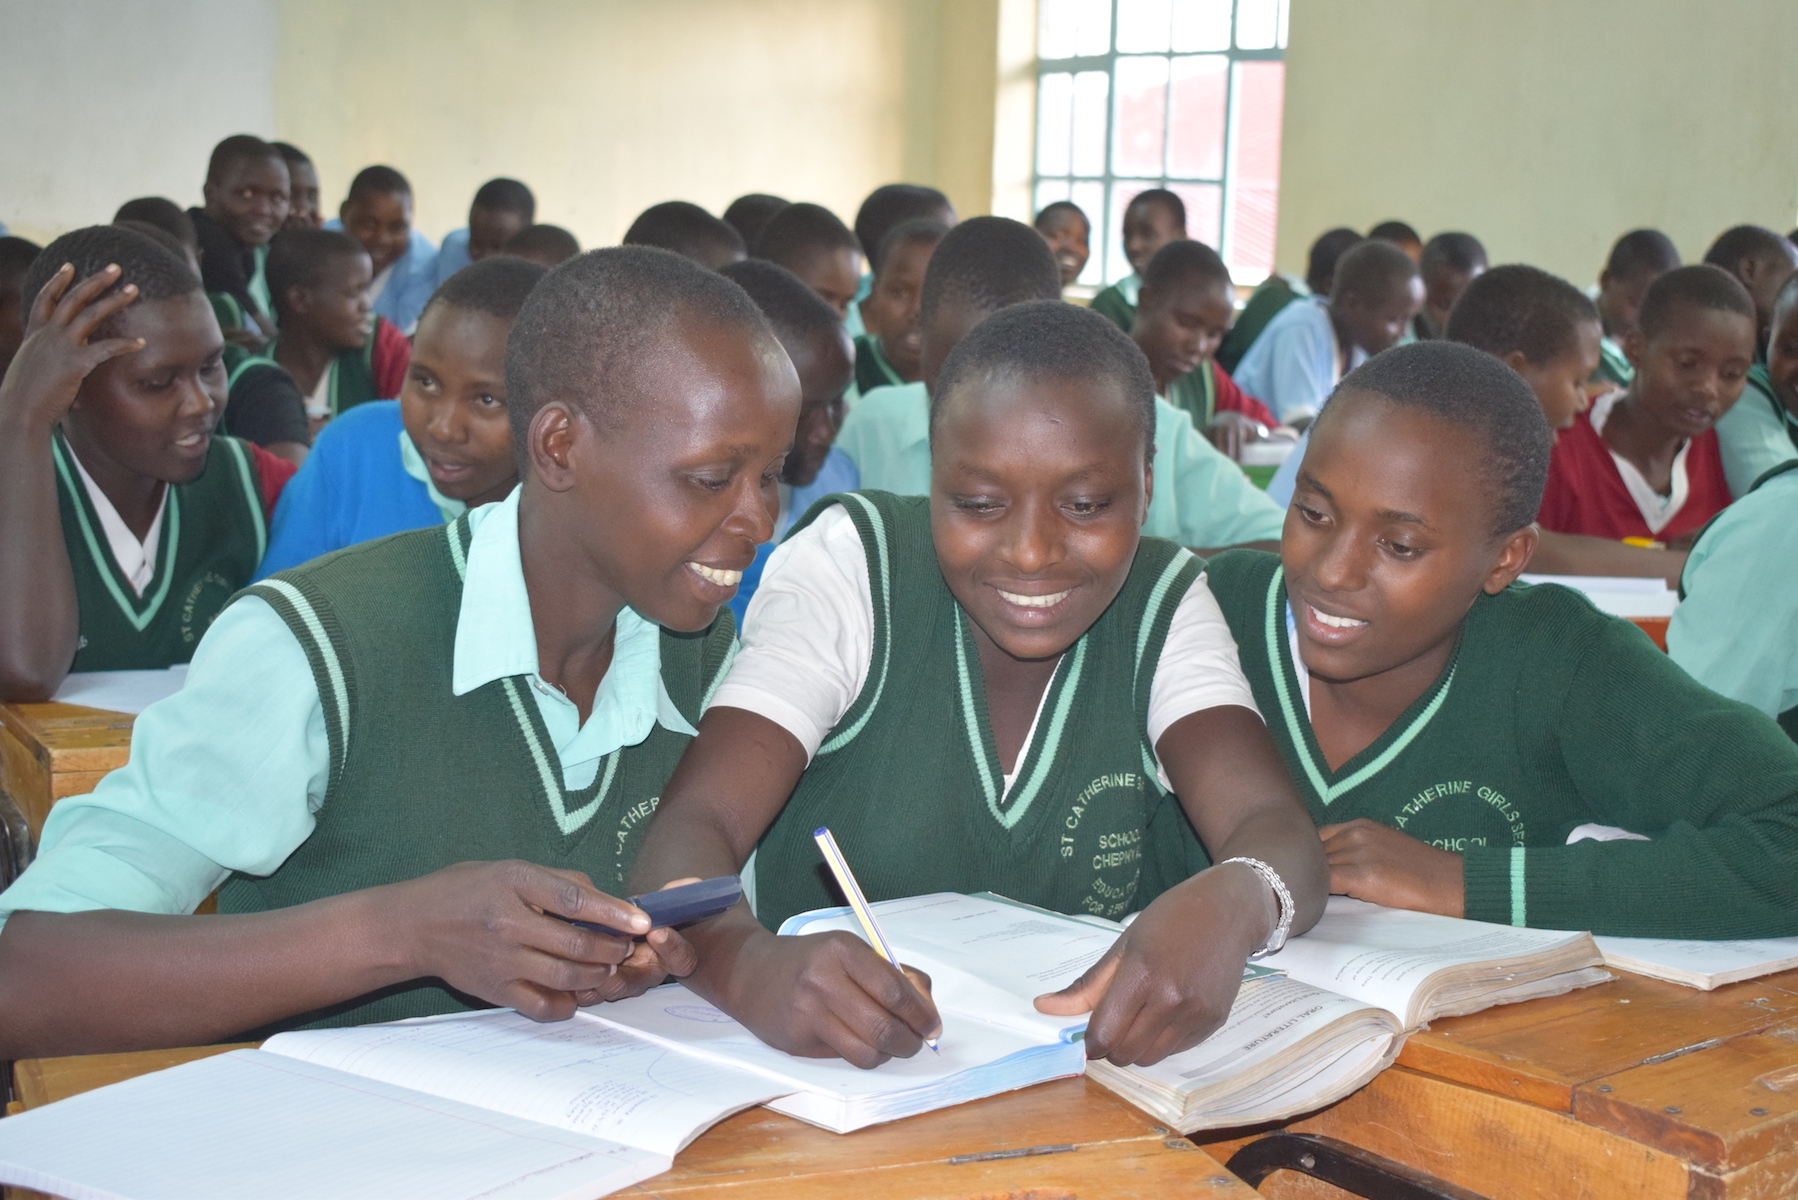 Children Studying at a school supported by World Vision in West Pokot County, Kenya. Due to the COVID-19 pandemic, schools have been closed in Kenya.